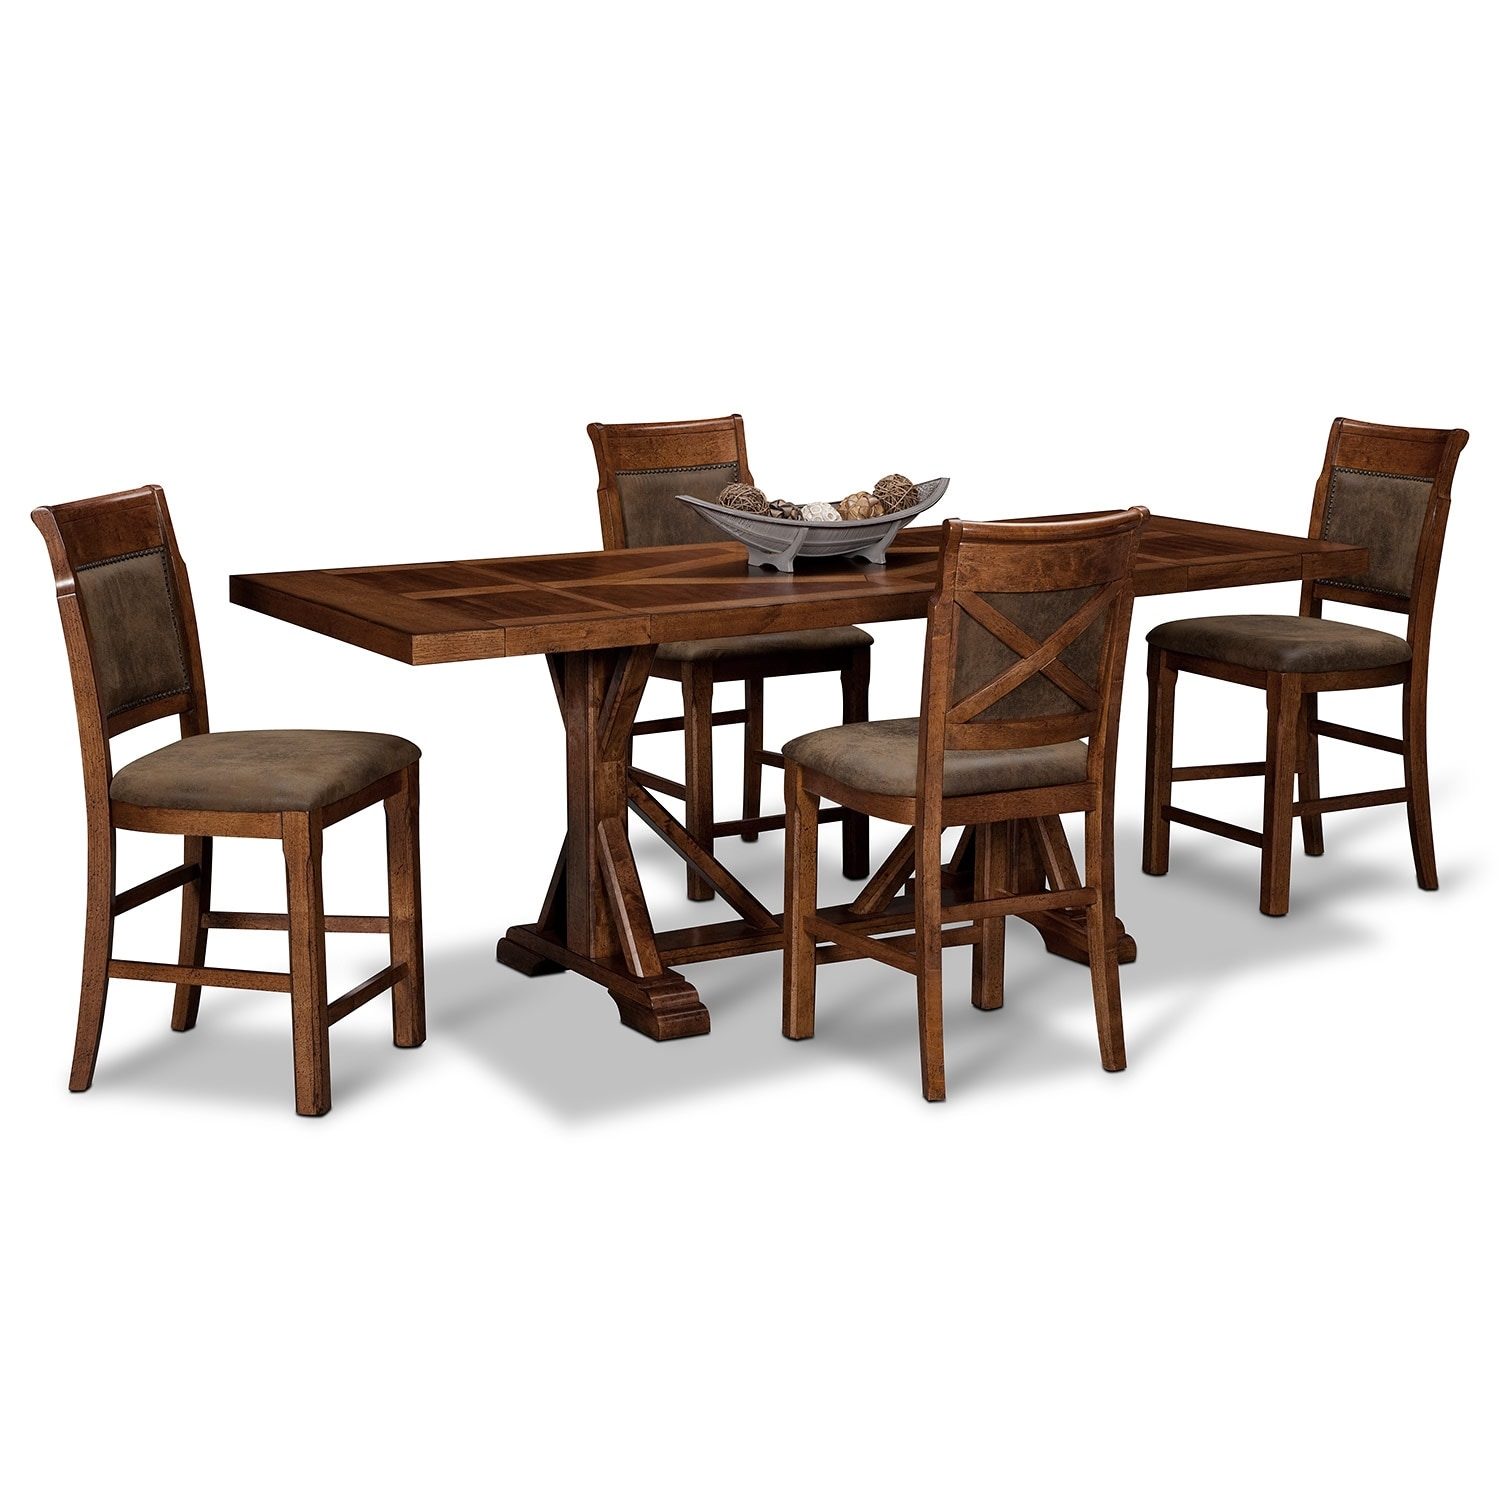 [Austin Walnut 5 Pc. Counter-Height Dinette]